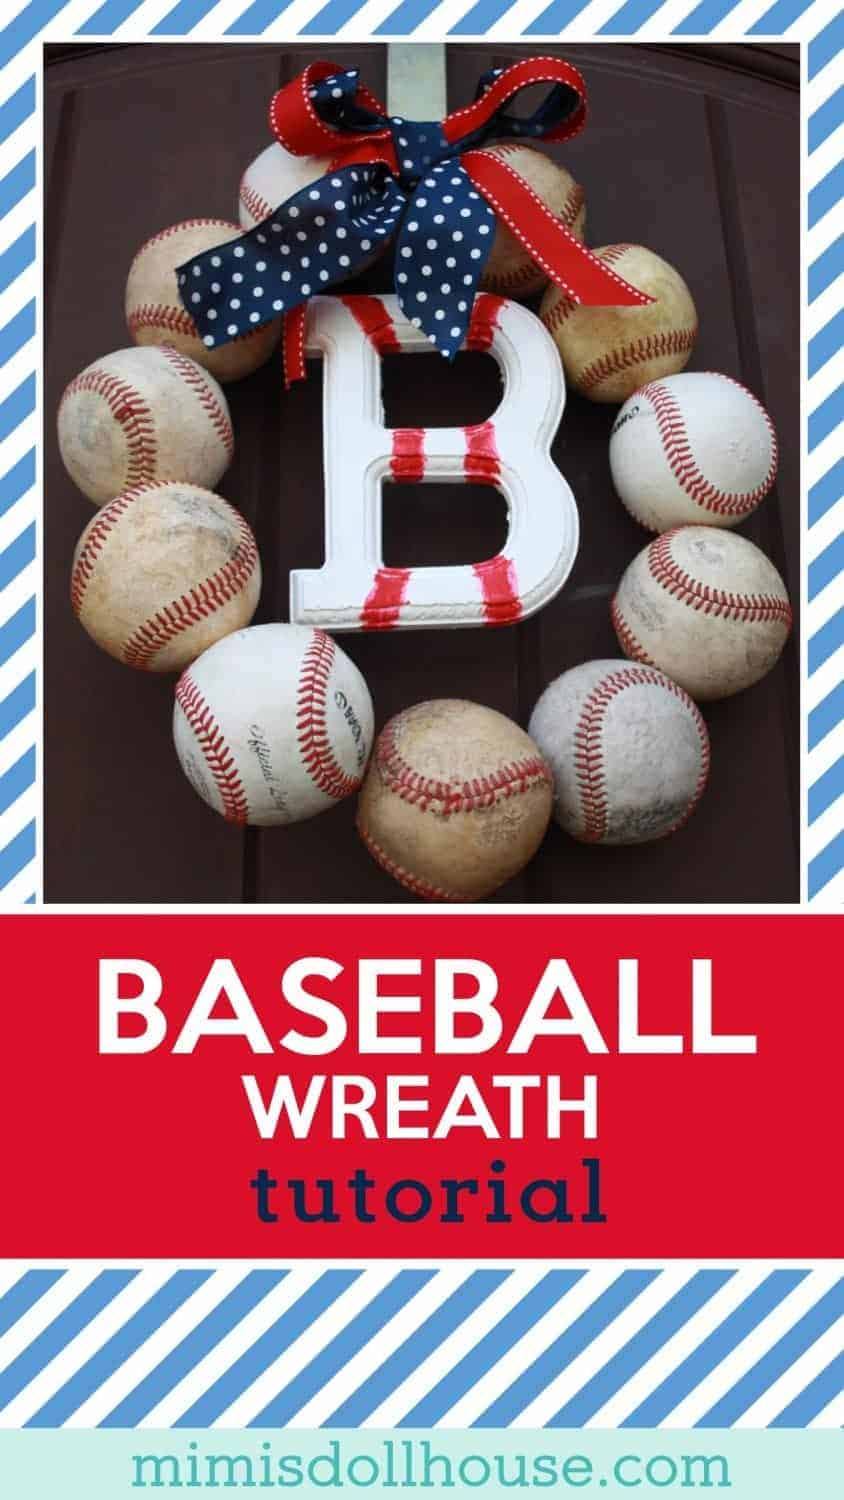 Looking for a fun DIY baseball craft? This Baseball wreath tutorial is perfect for a baseball party or just to celebrate baseball season.  #baseballparty #partyforboys